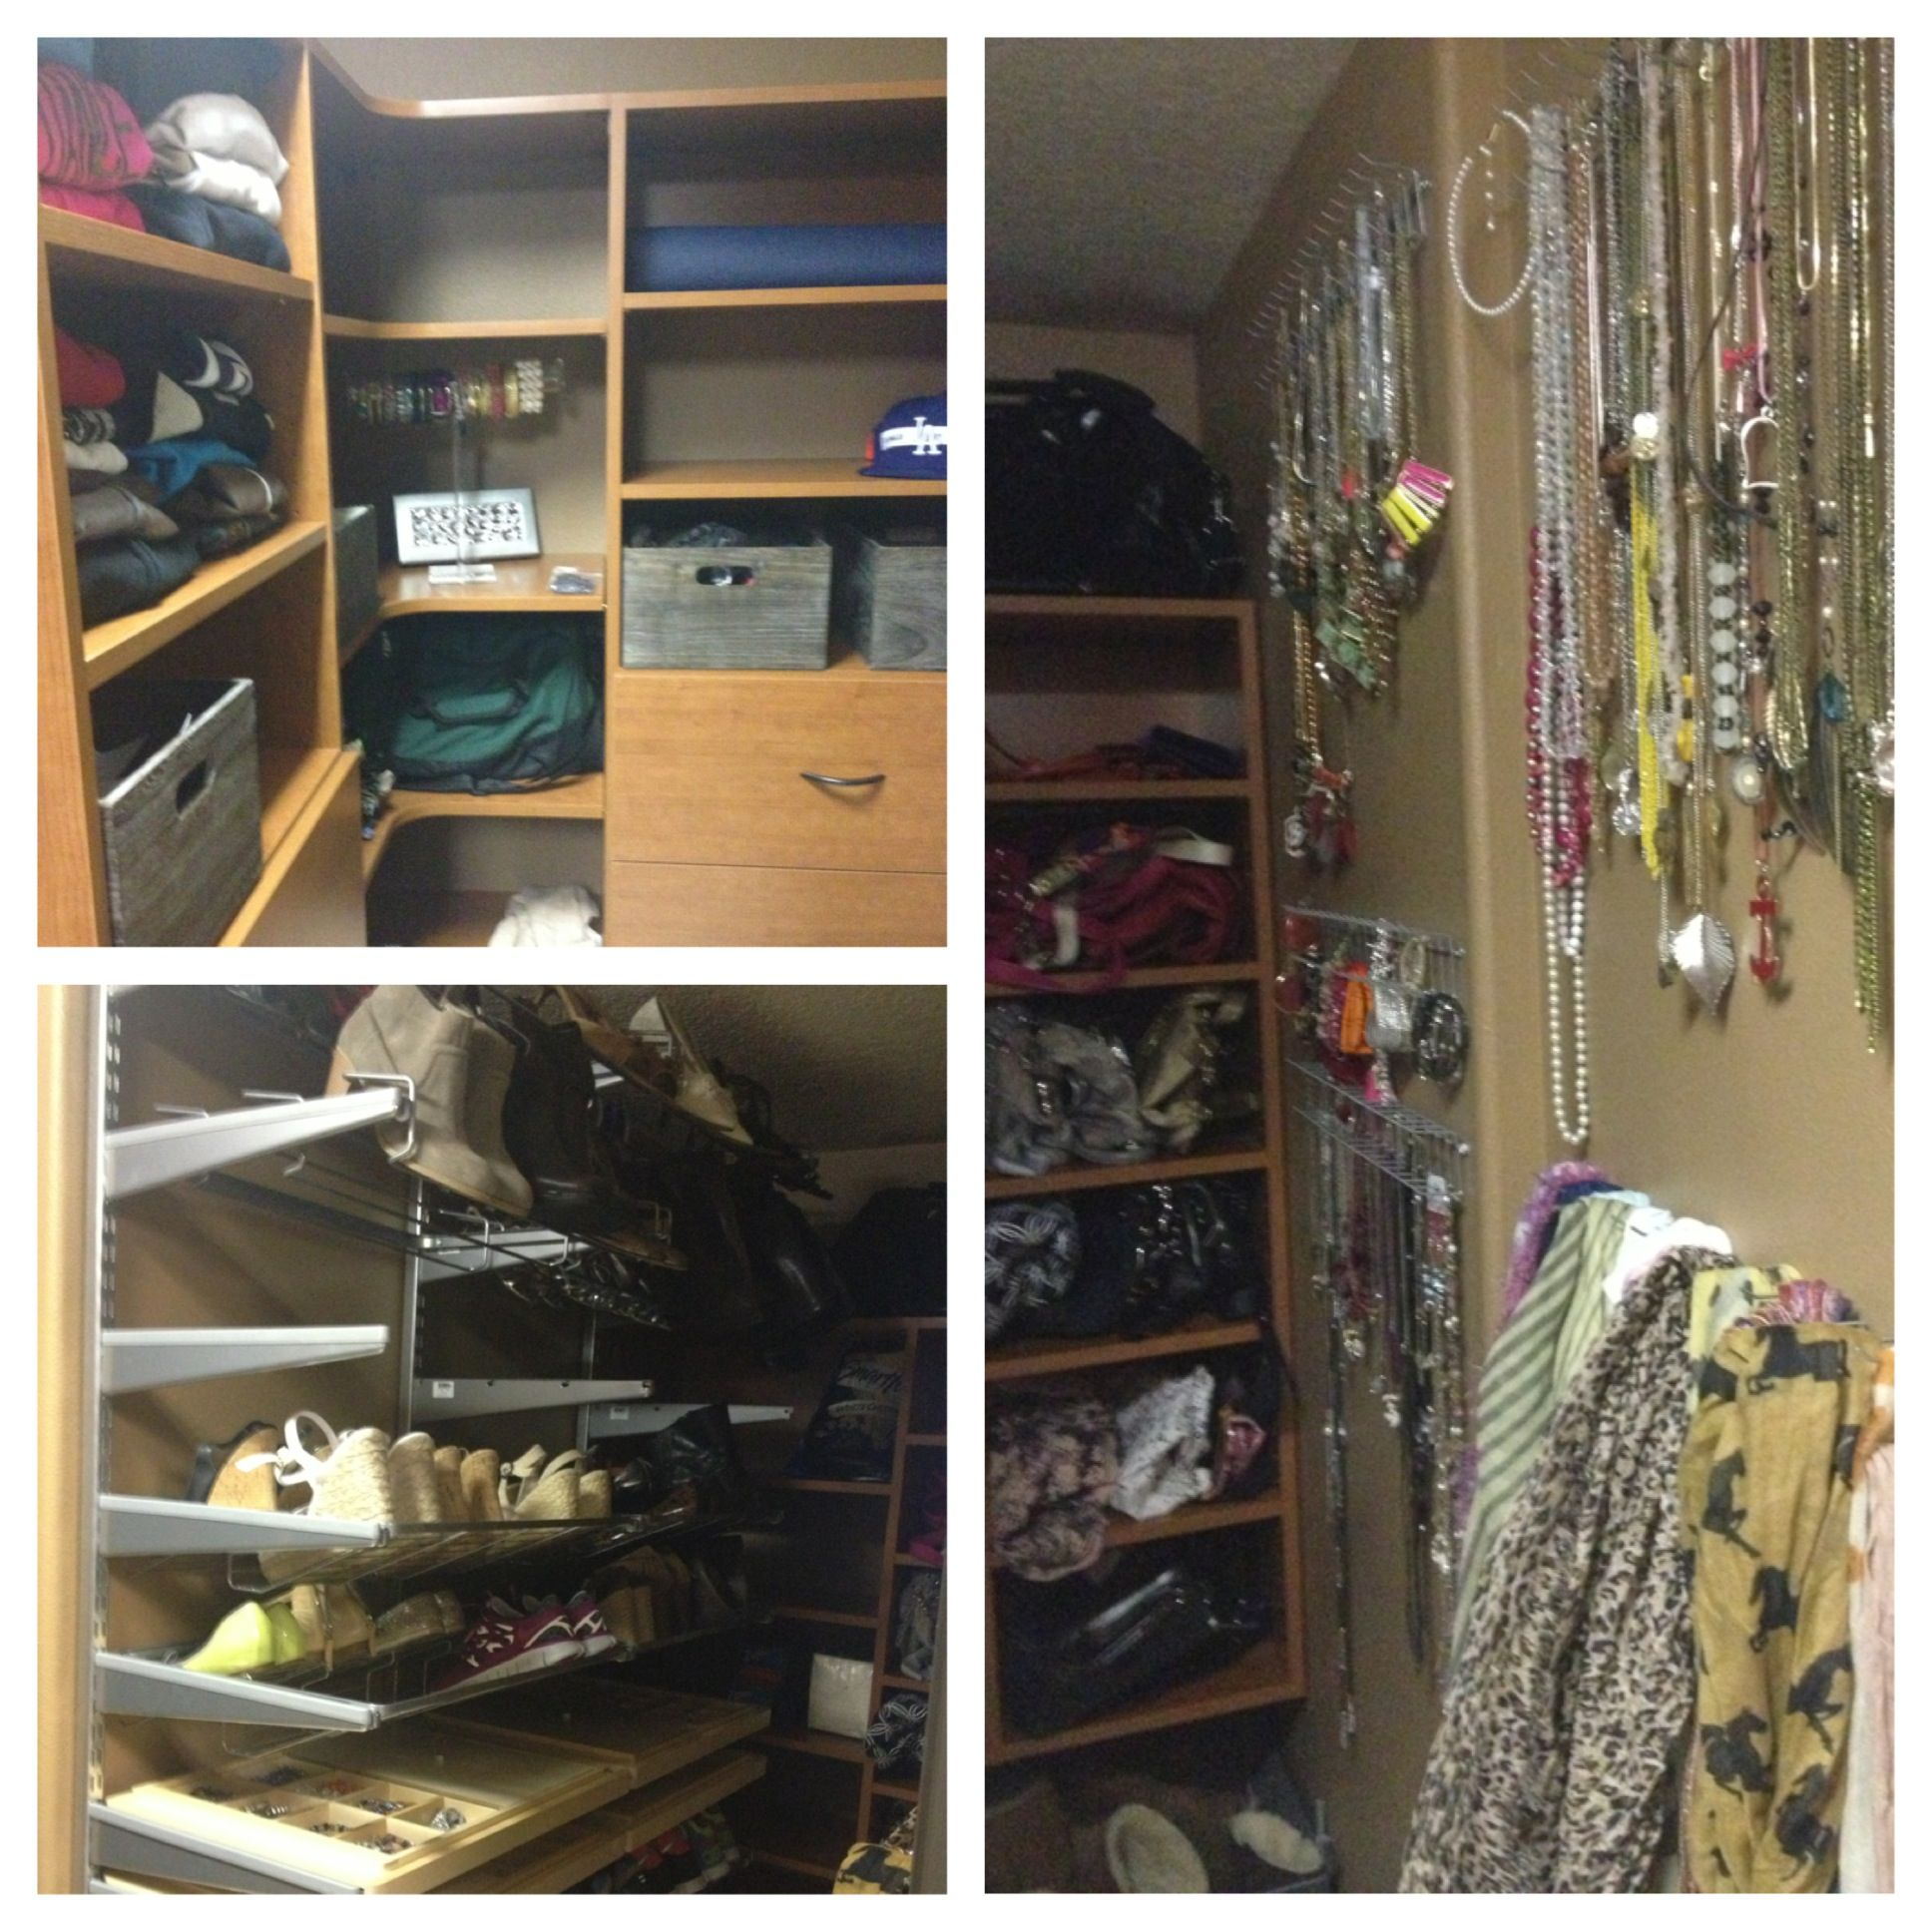 After We Installed Custom Shelving From Portland Closets And Shoe Racks And  Baskets From The Container